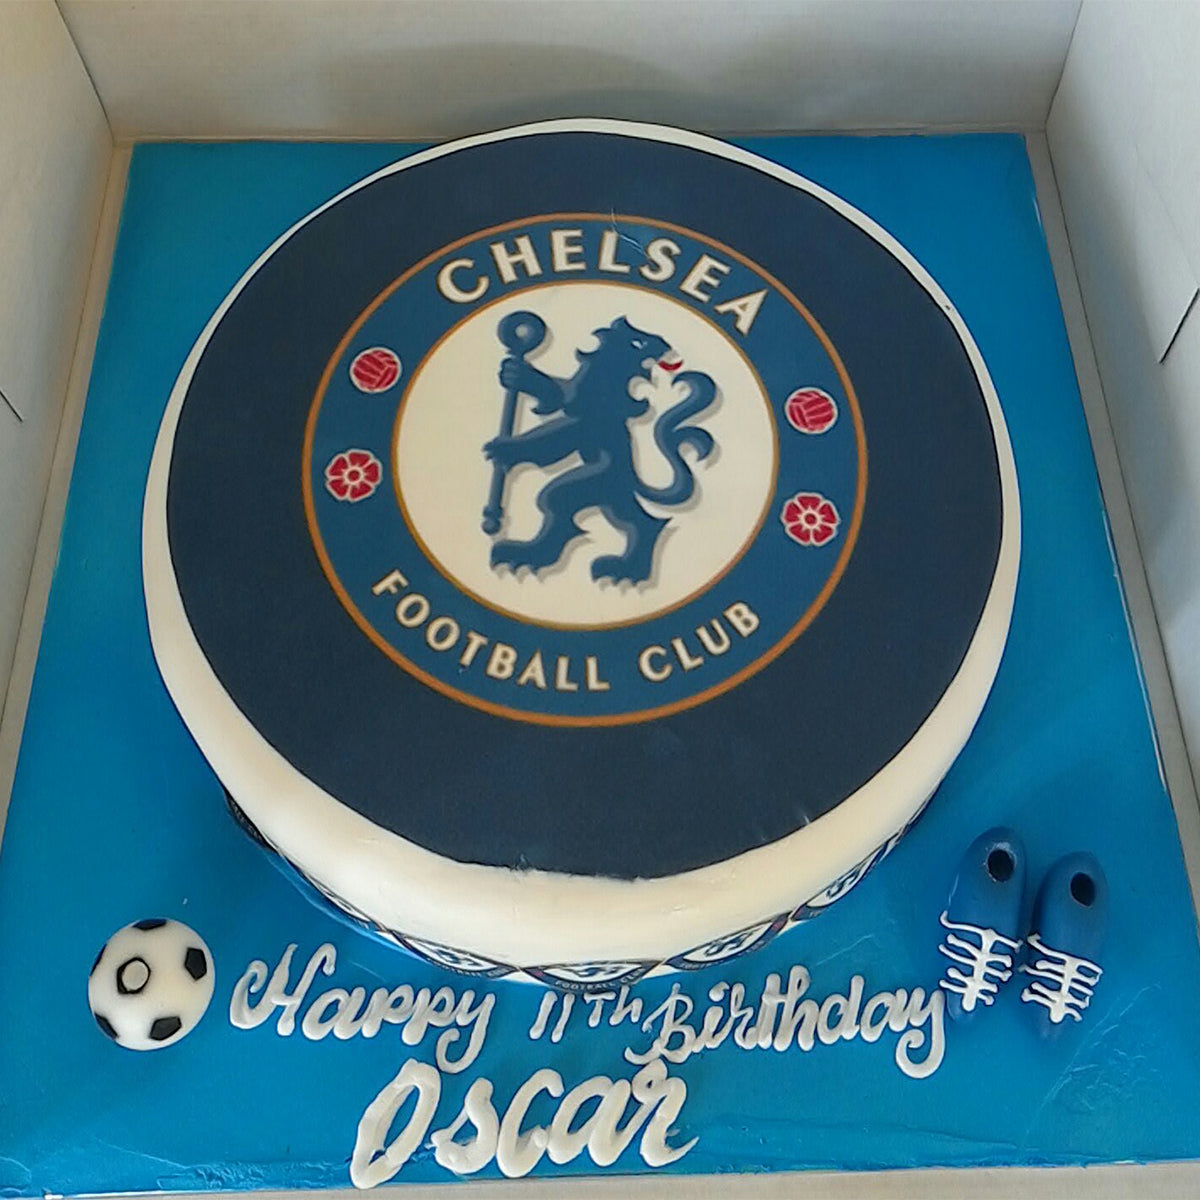 Chelsea Football Club Cake - CWD